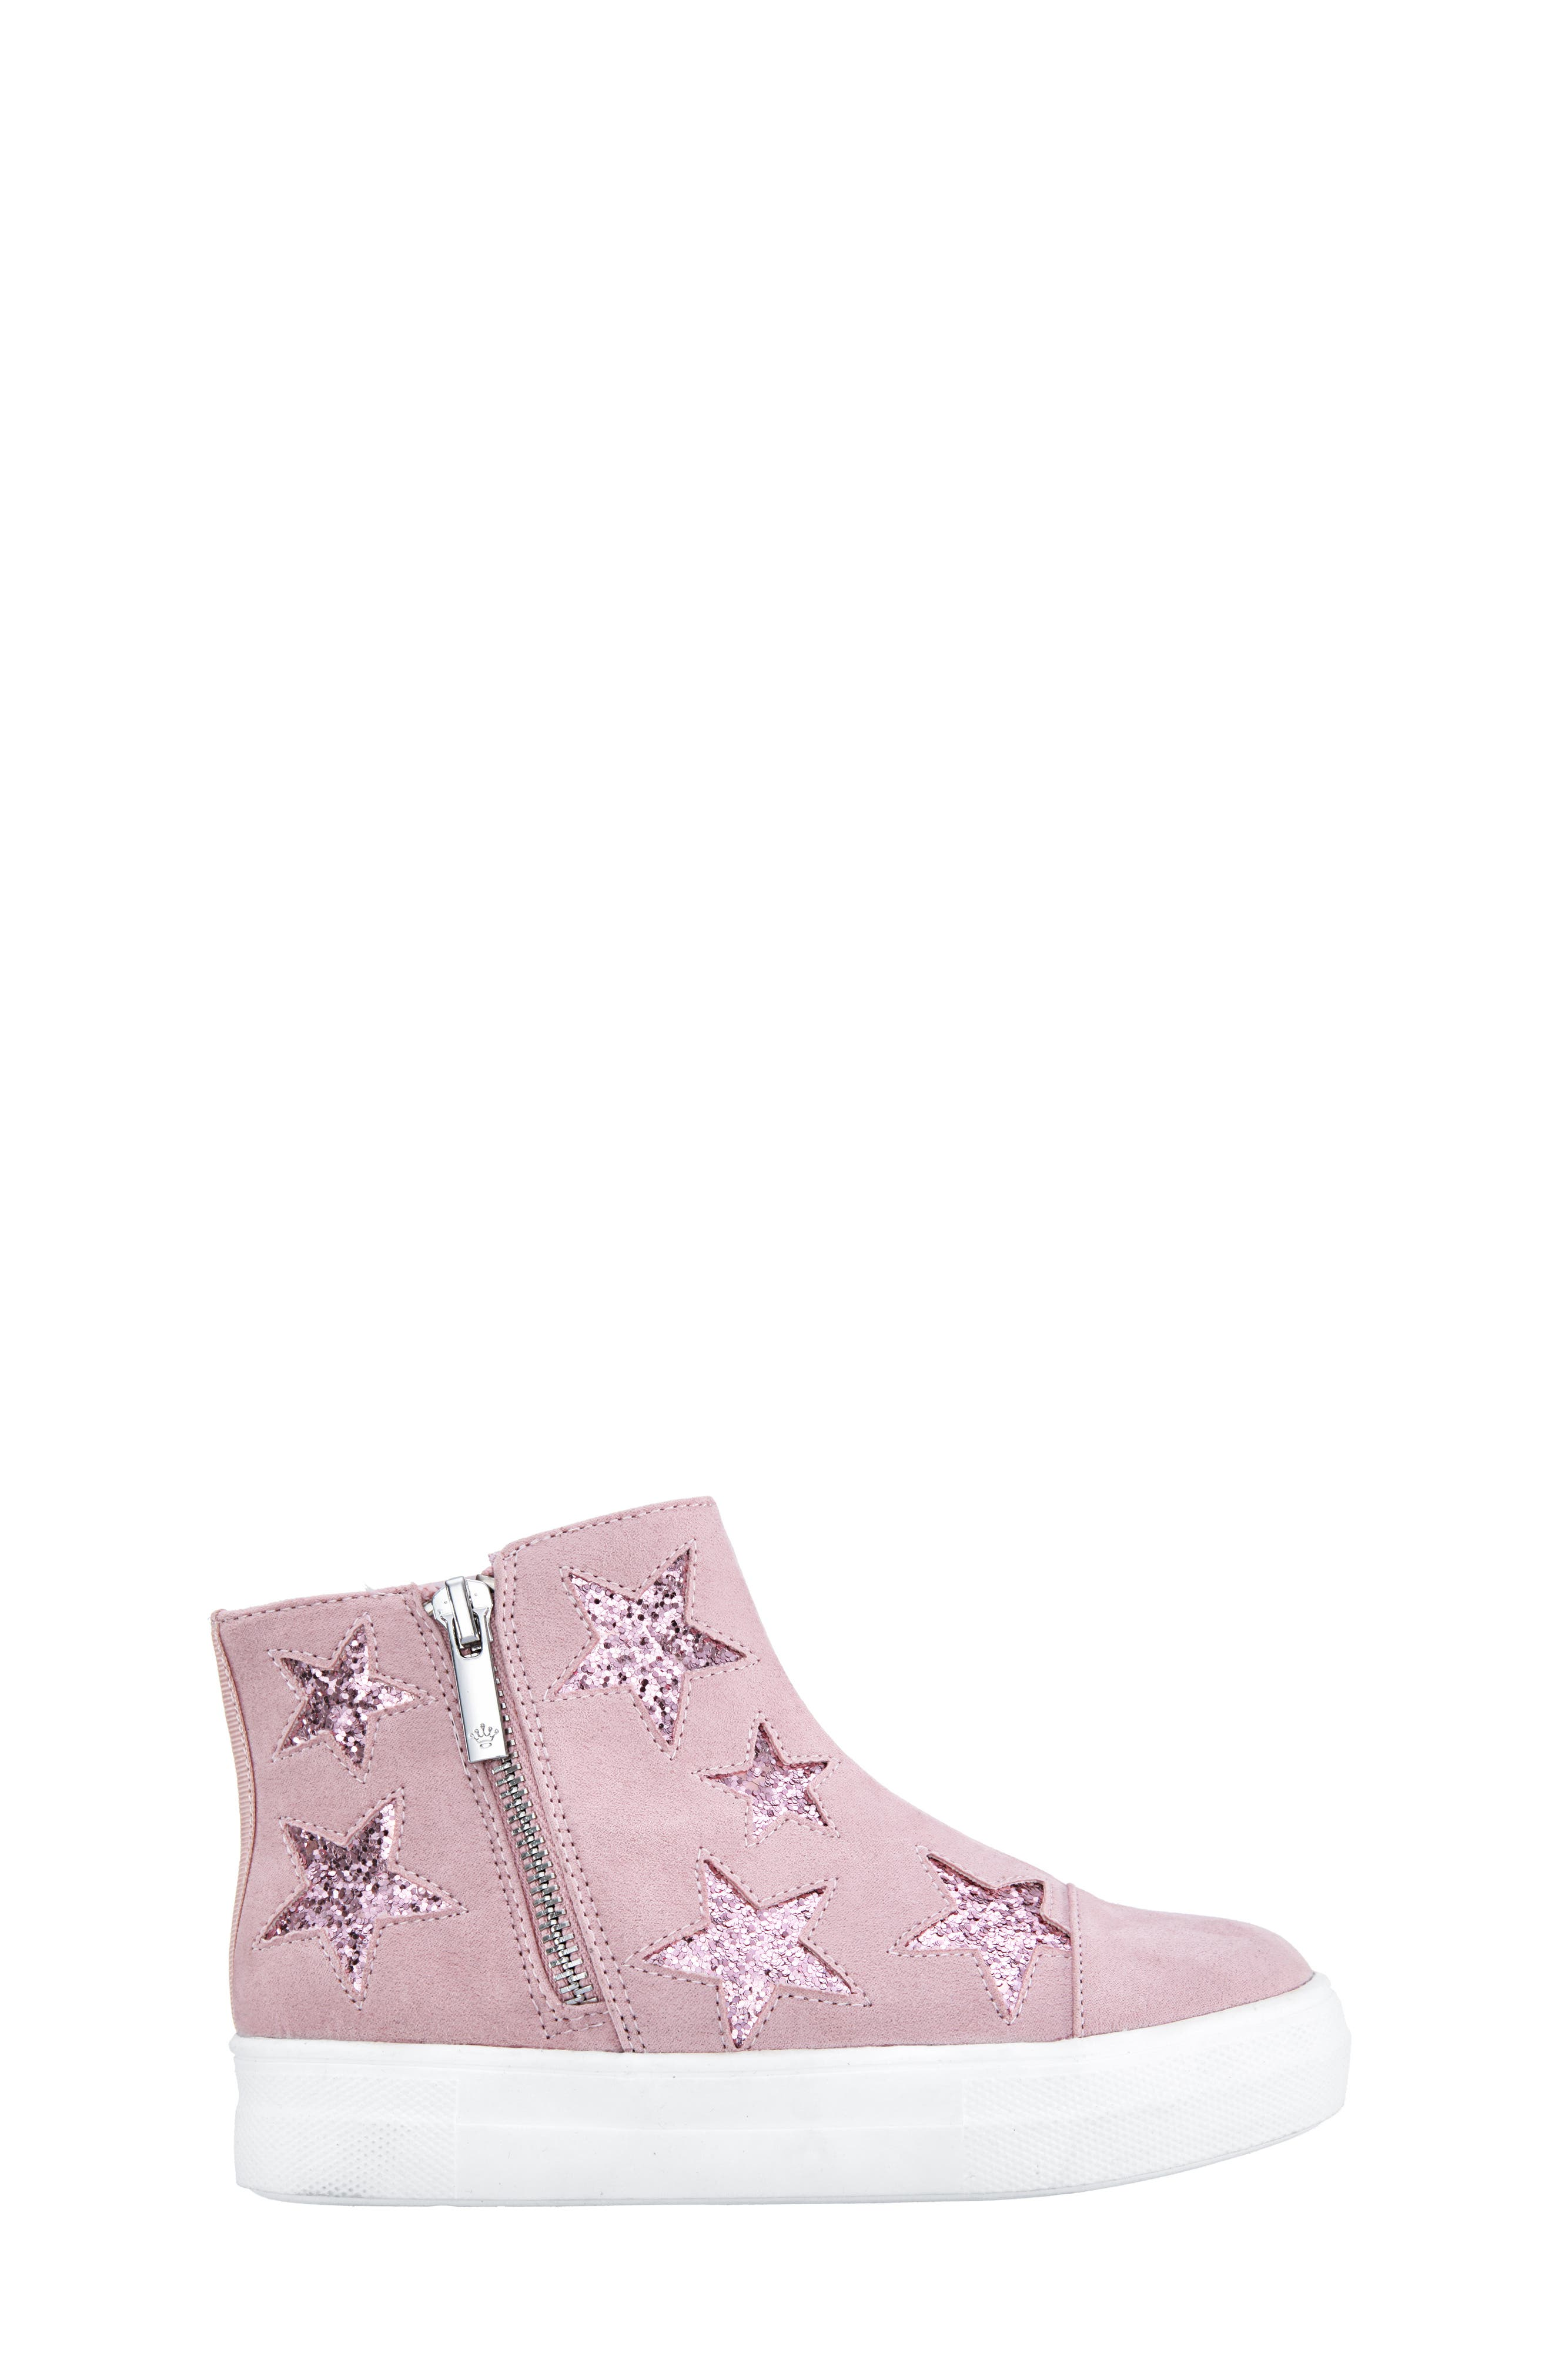 Jacqui Glitter High Top Sneaker,                             Alternate thumbnail 3, color,                             BLUSH MICRO SUEDE